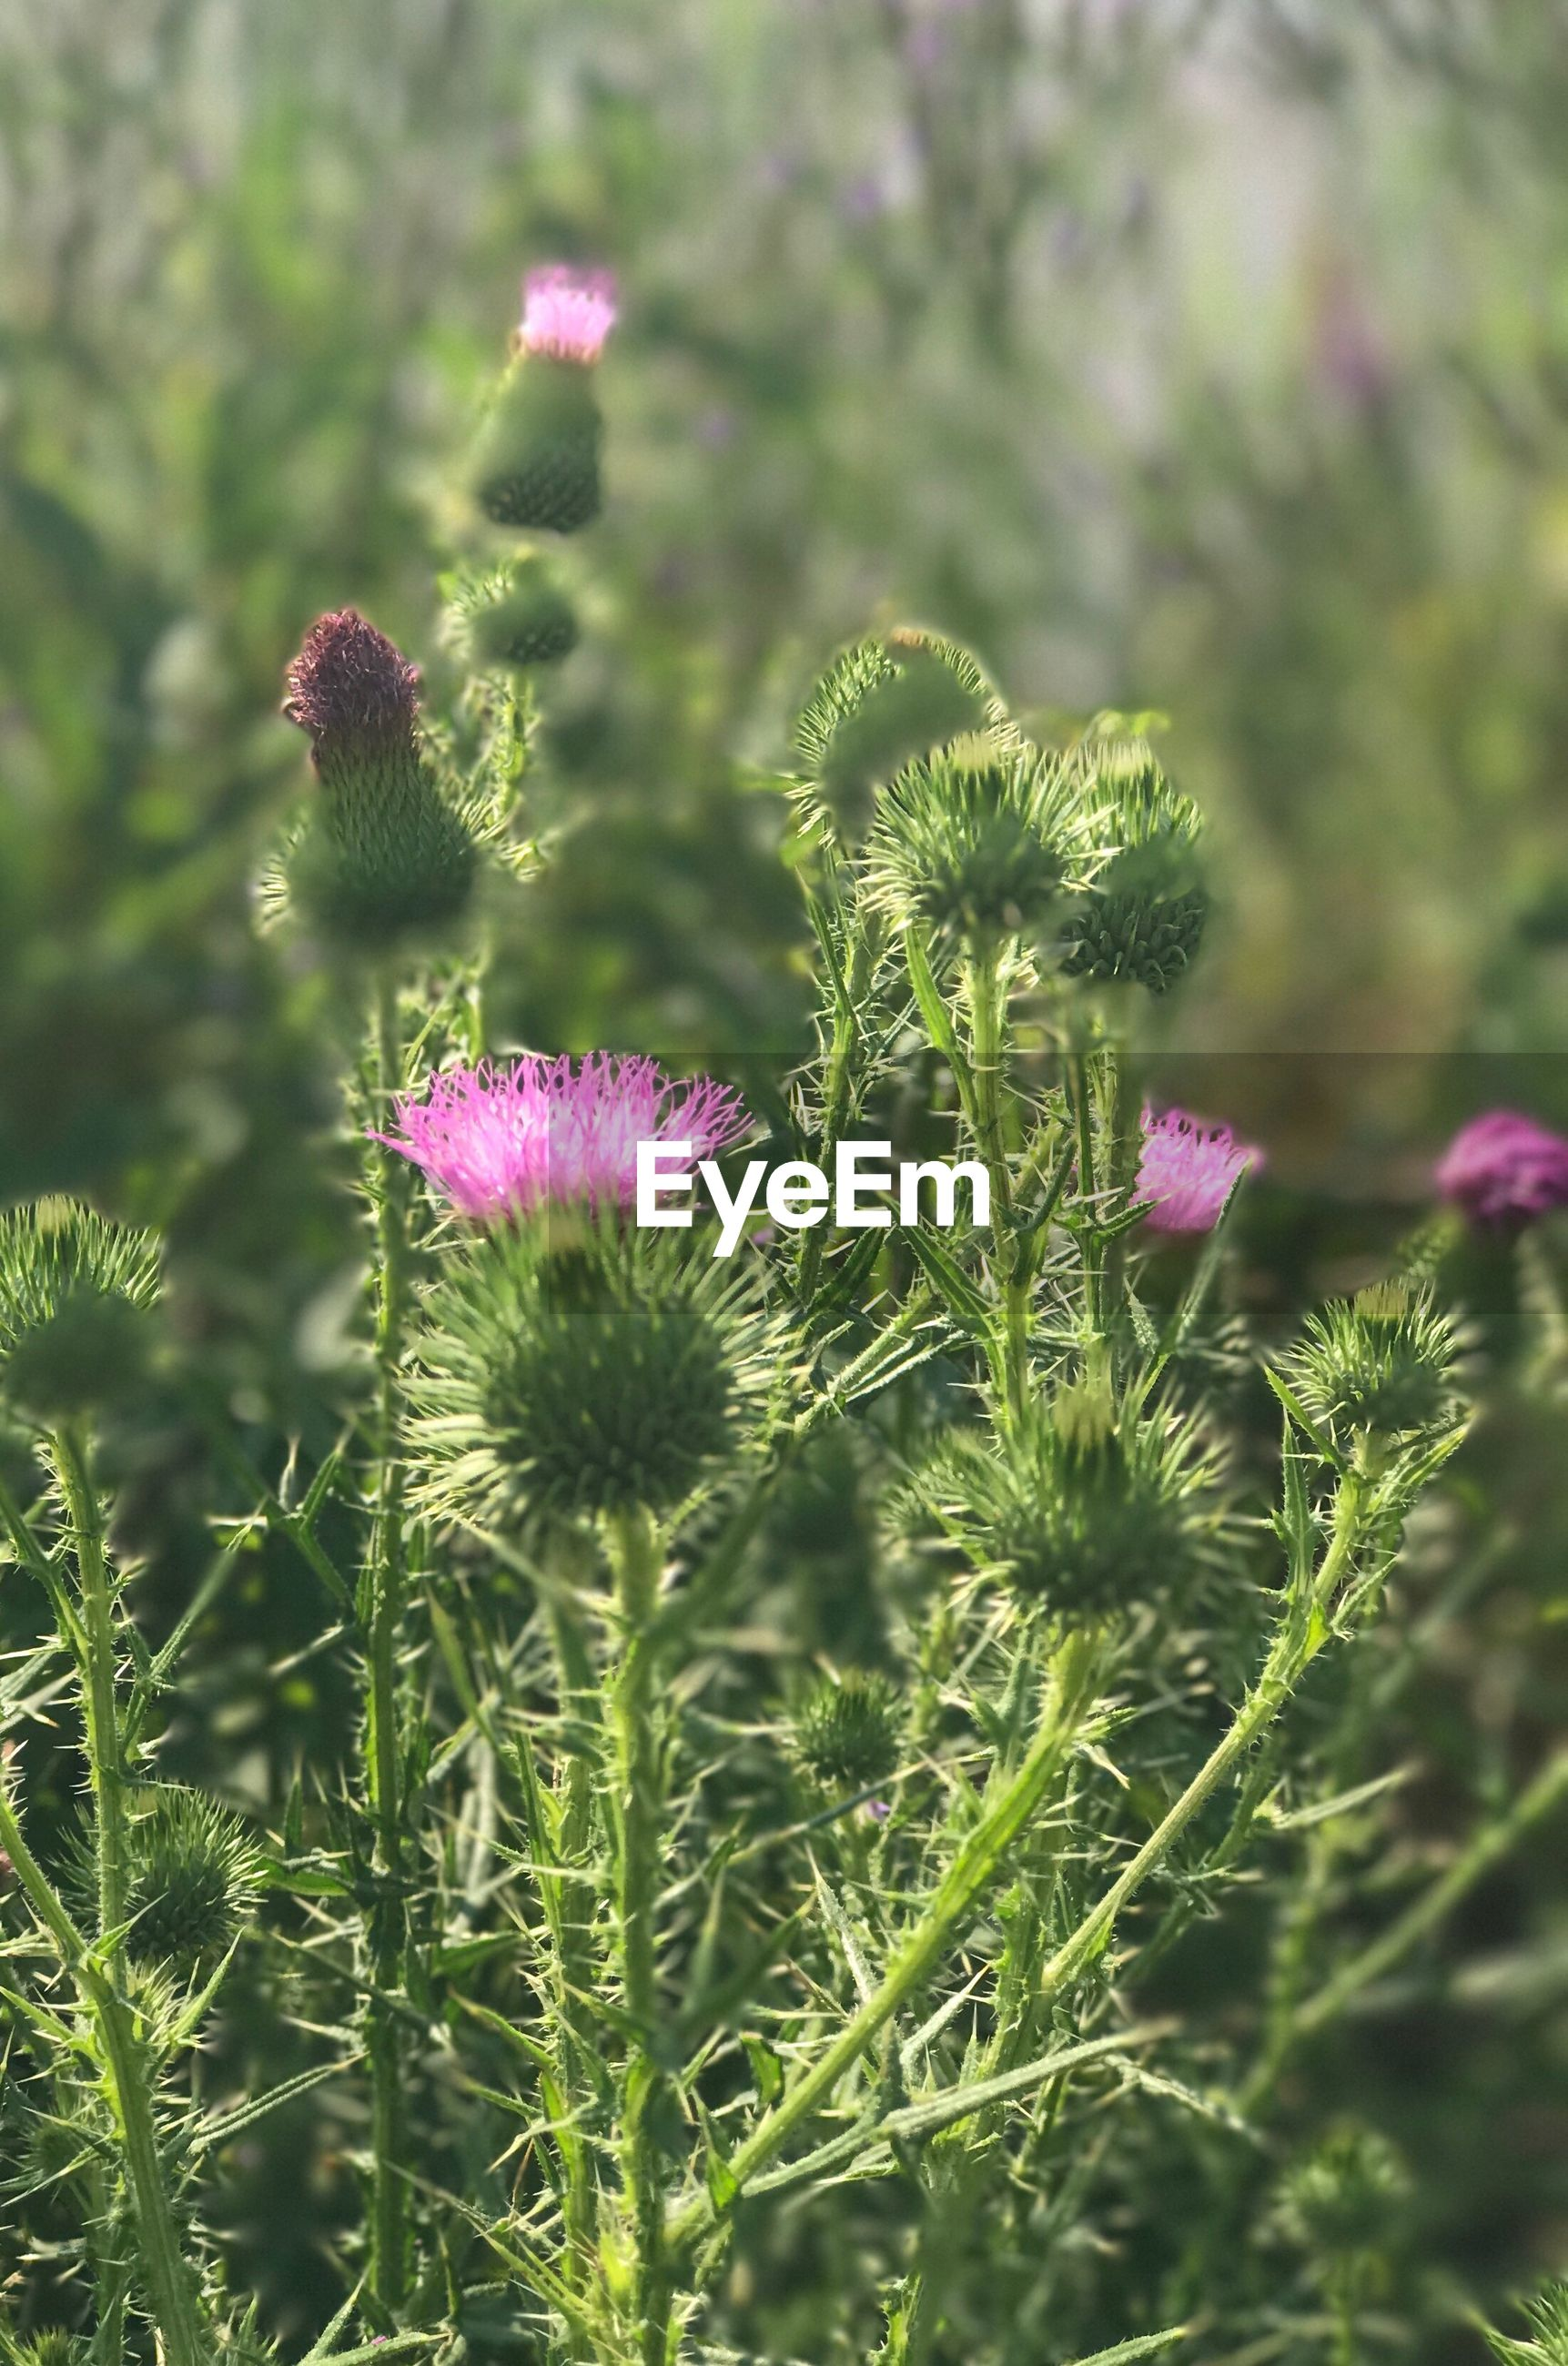 CLOSE-UP OF THISTLE FLOWER